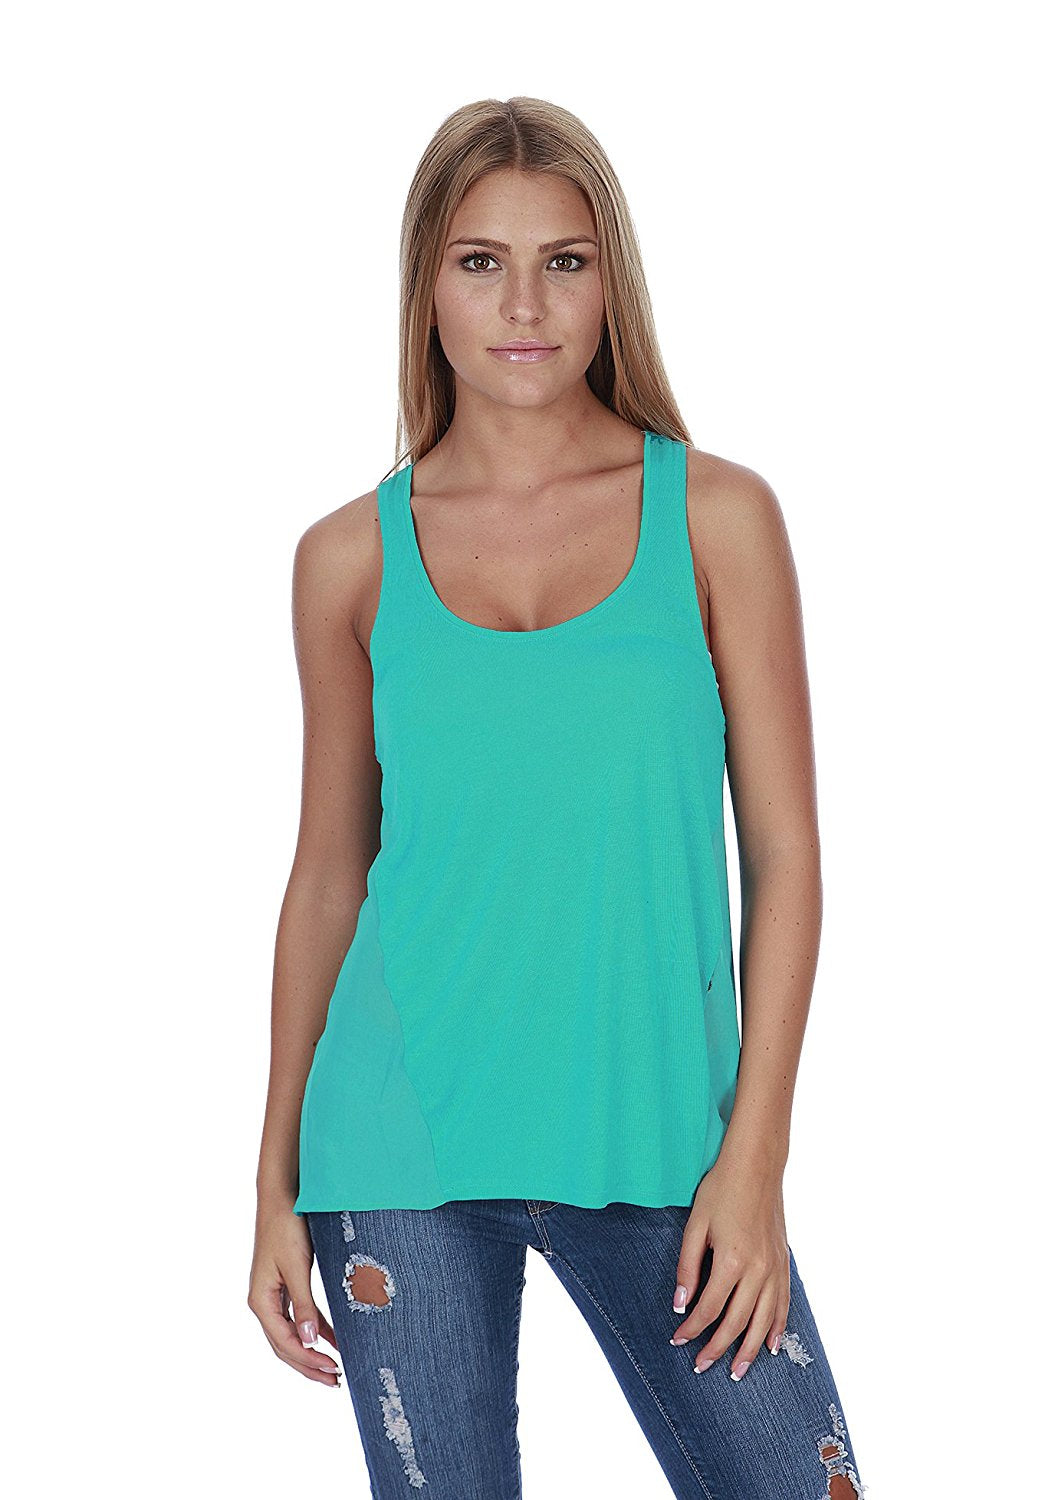 Hollywood Star Fashion Women's Semi Sheer Solid Tank Top With Sheer Chiffon Back